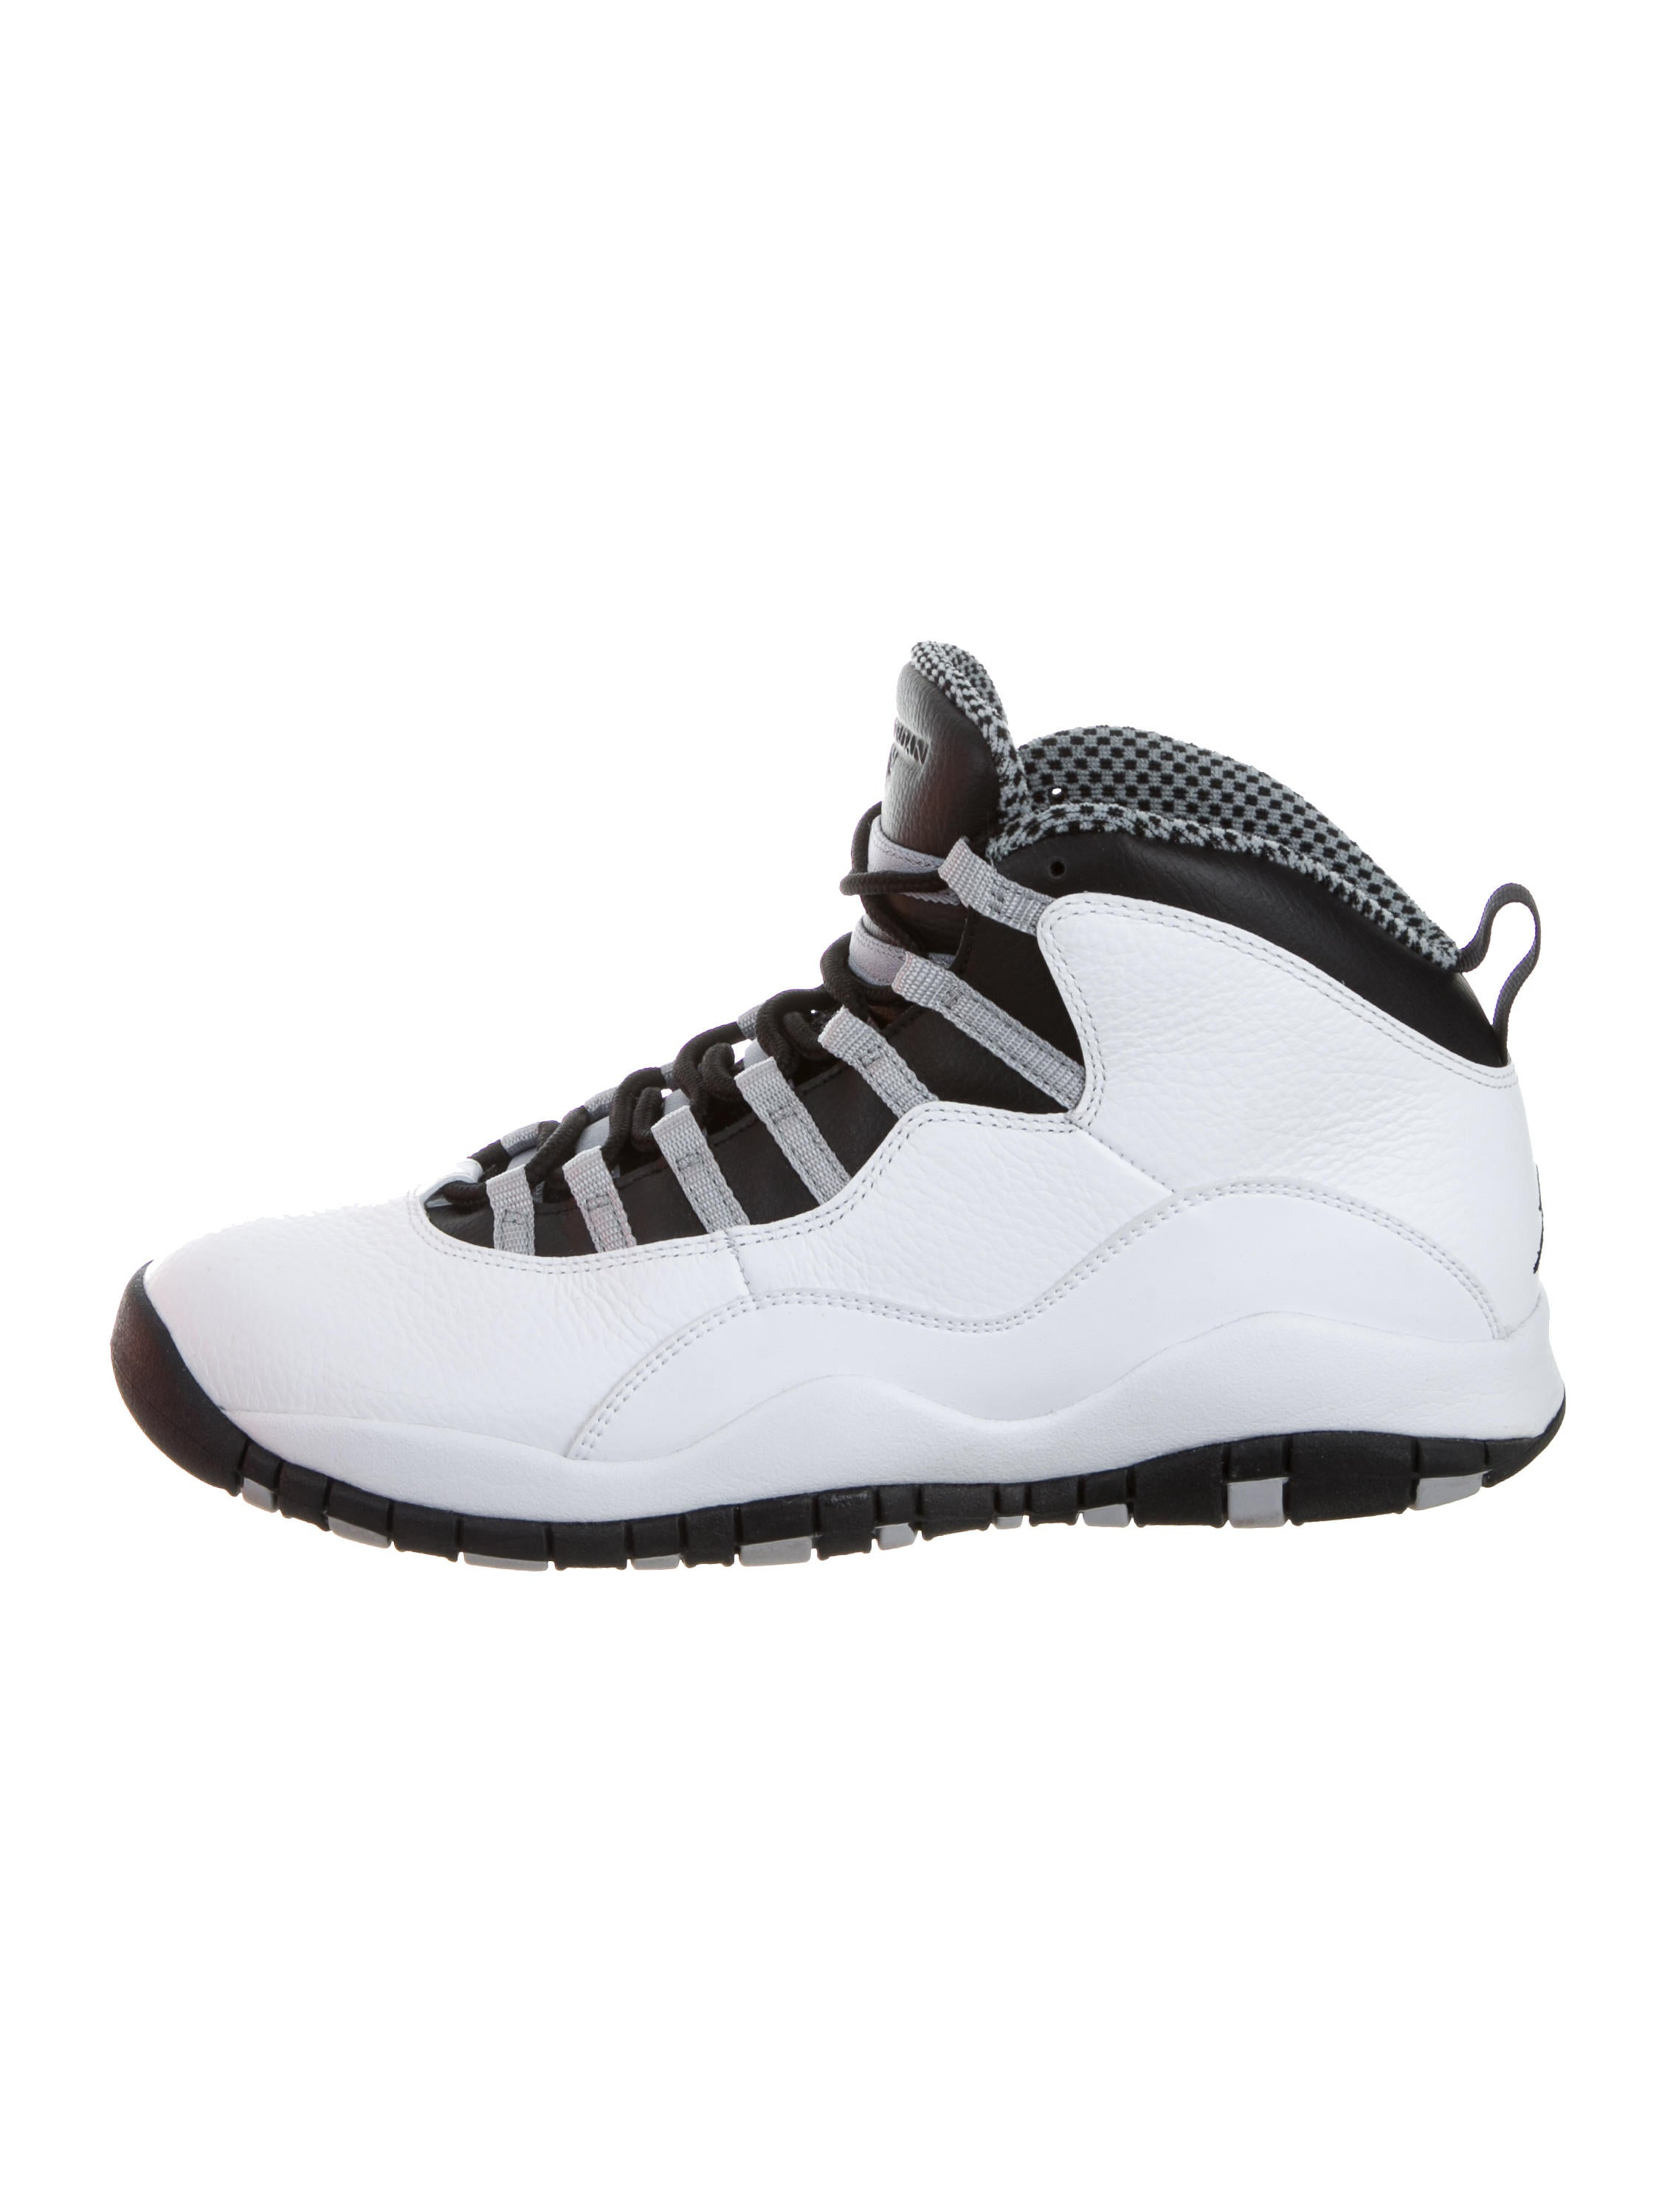 cheap for discount 269a3 4cb8f ... discount code for nike air jordan retro 10 sneakers. retro 10 sneakers  62019 dc4cd